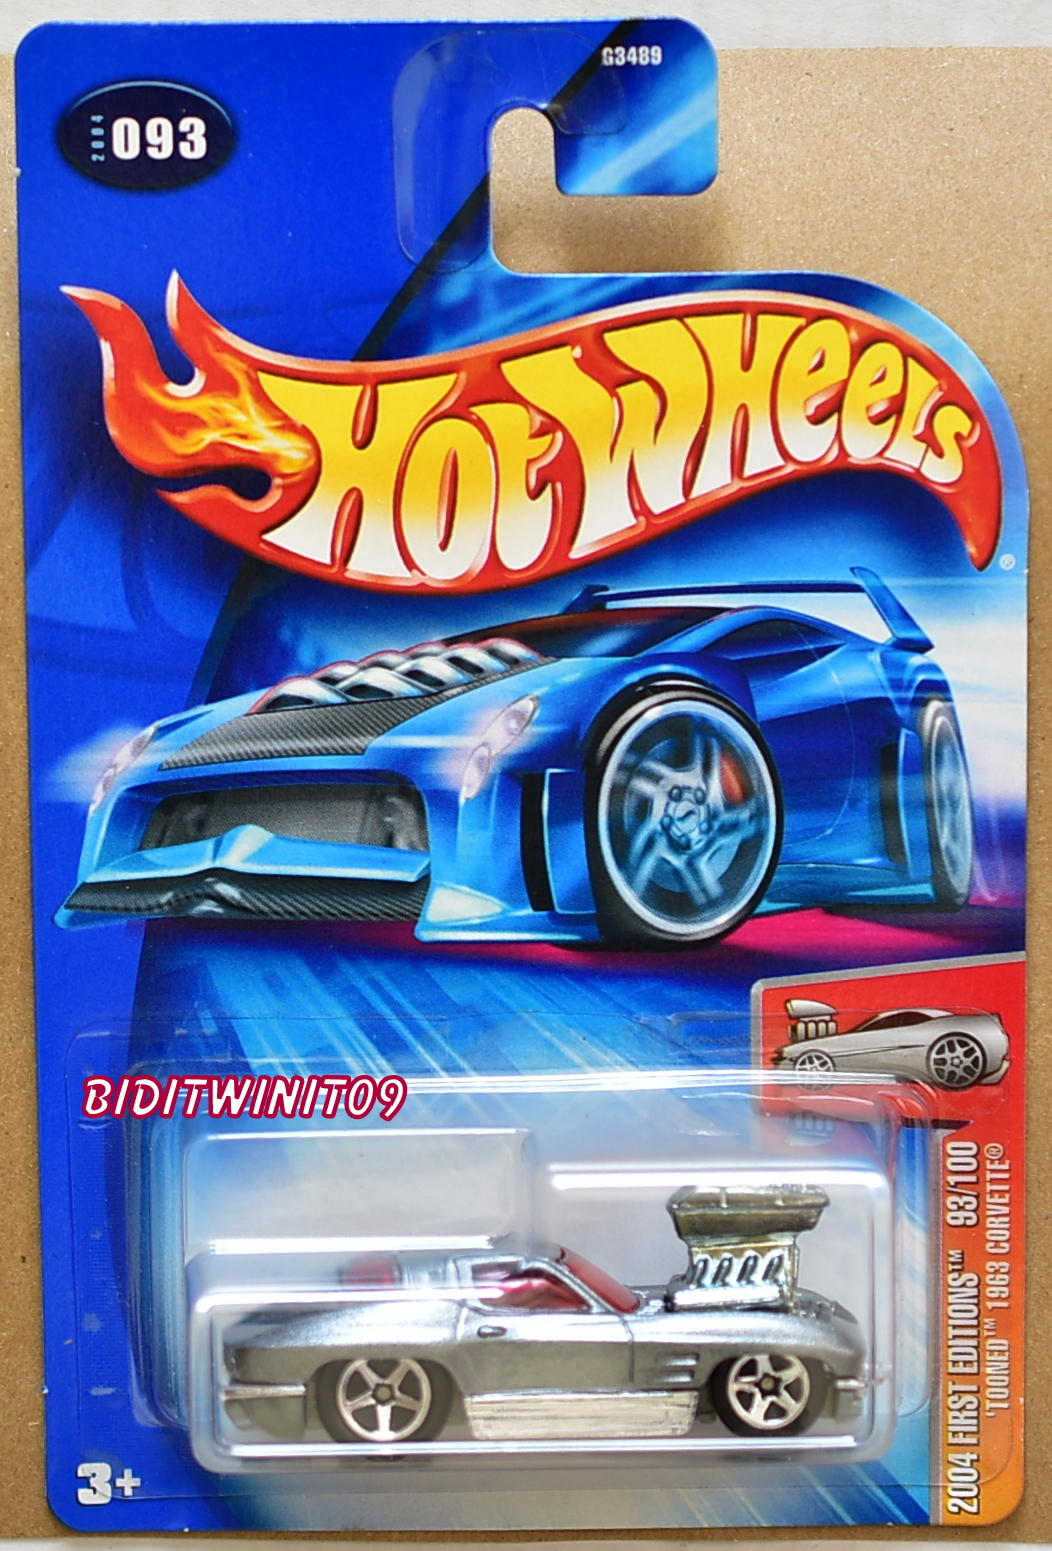 HOT WHEELS 2004 FIRST EDITIONS TOONED 1963 CORVETTE SILVER